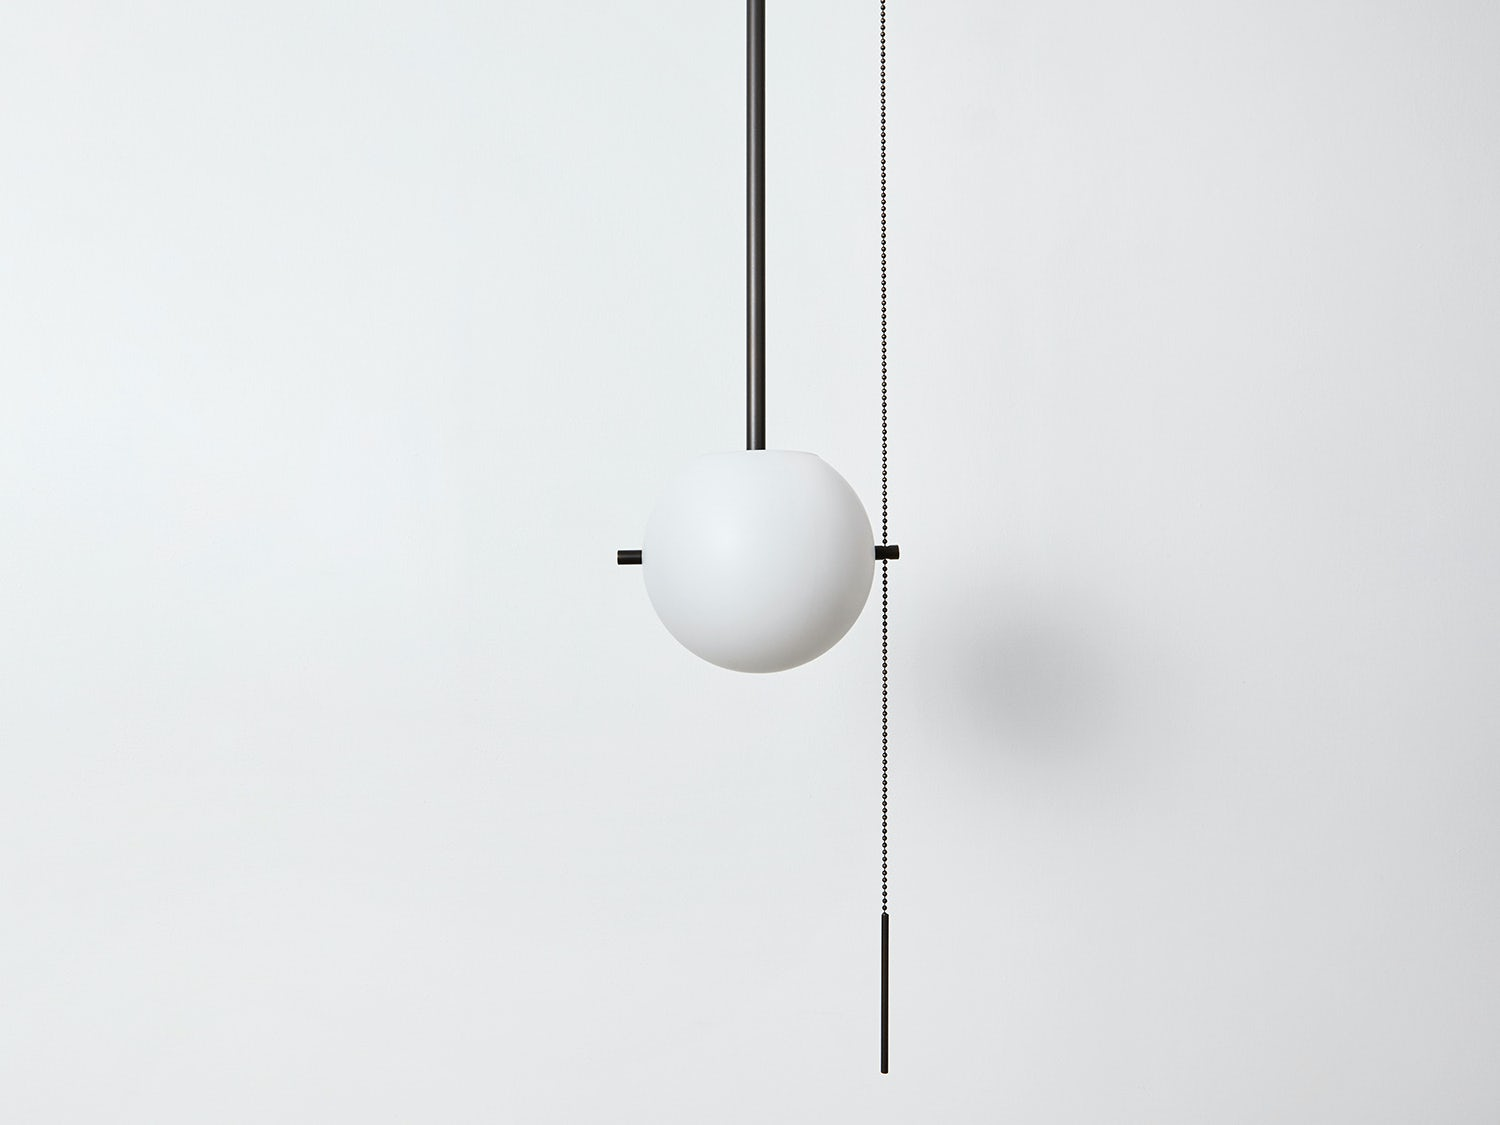 gallery image for Signal Pendant